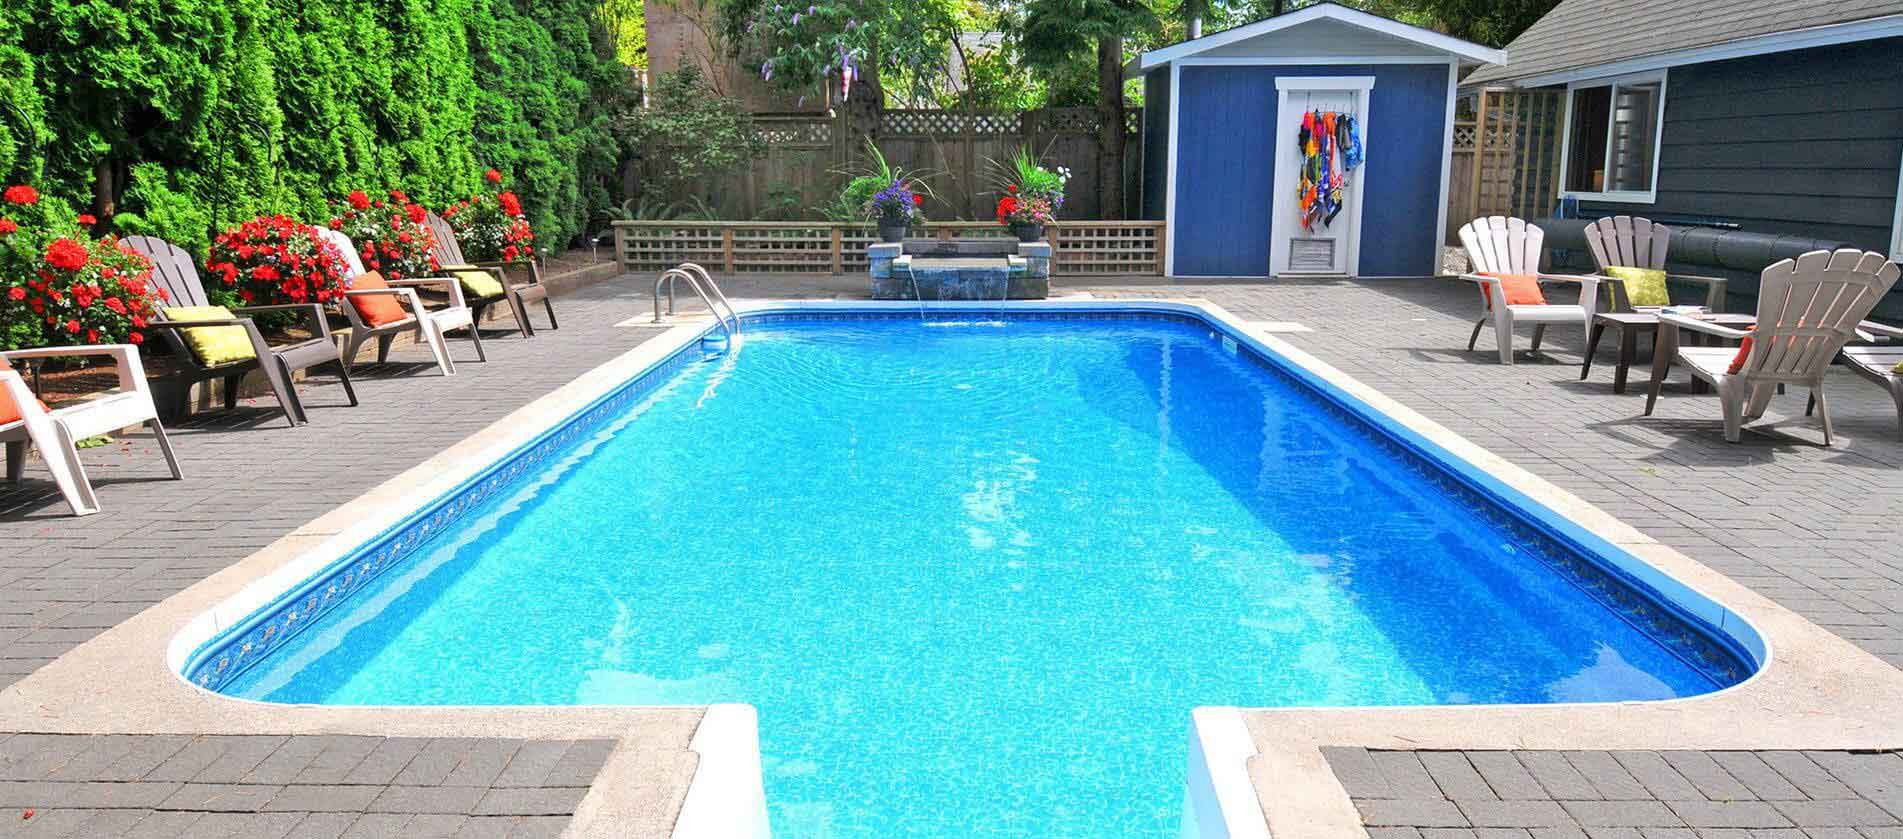 Monarch Pools Amp Spas Totowa Nj Swimming Pool Contractor